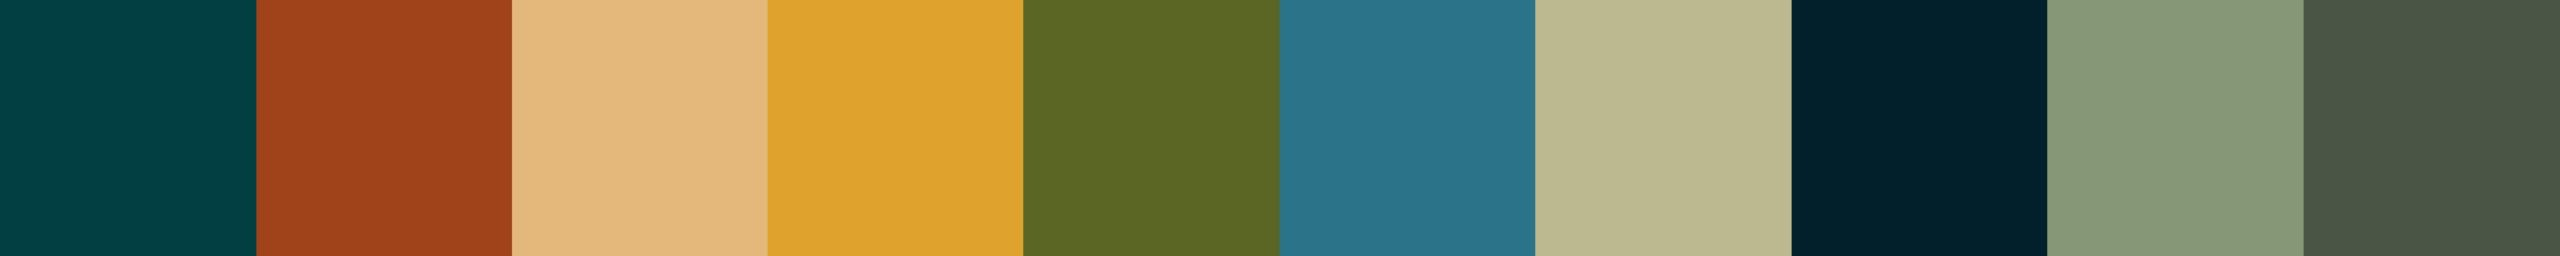 726 Silopronia Color Palette